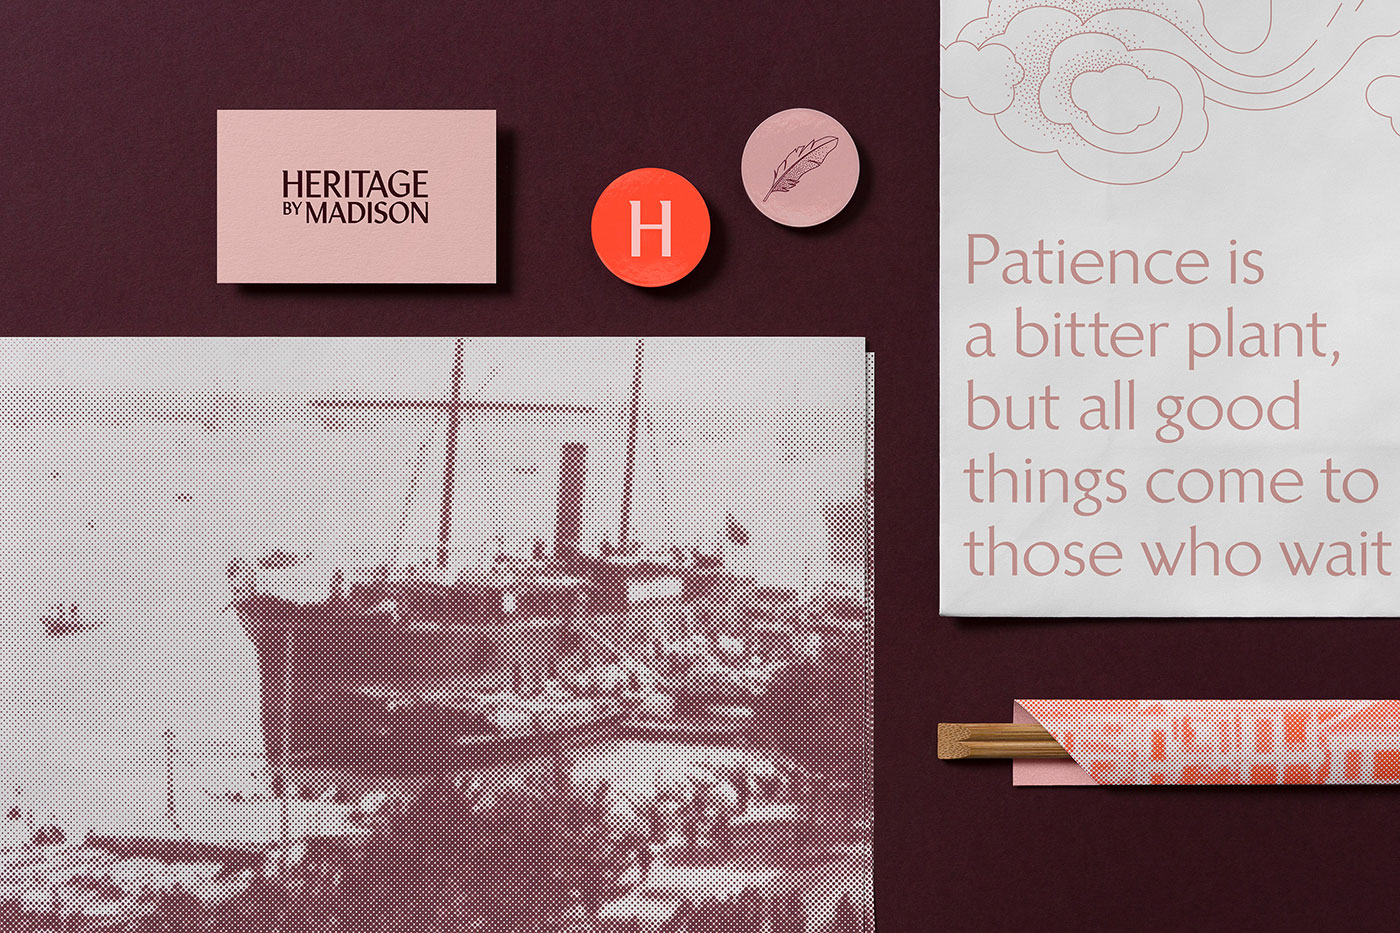 Heritage by Madison identity